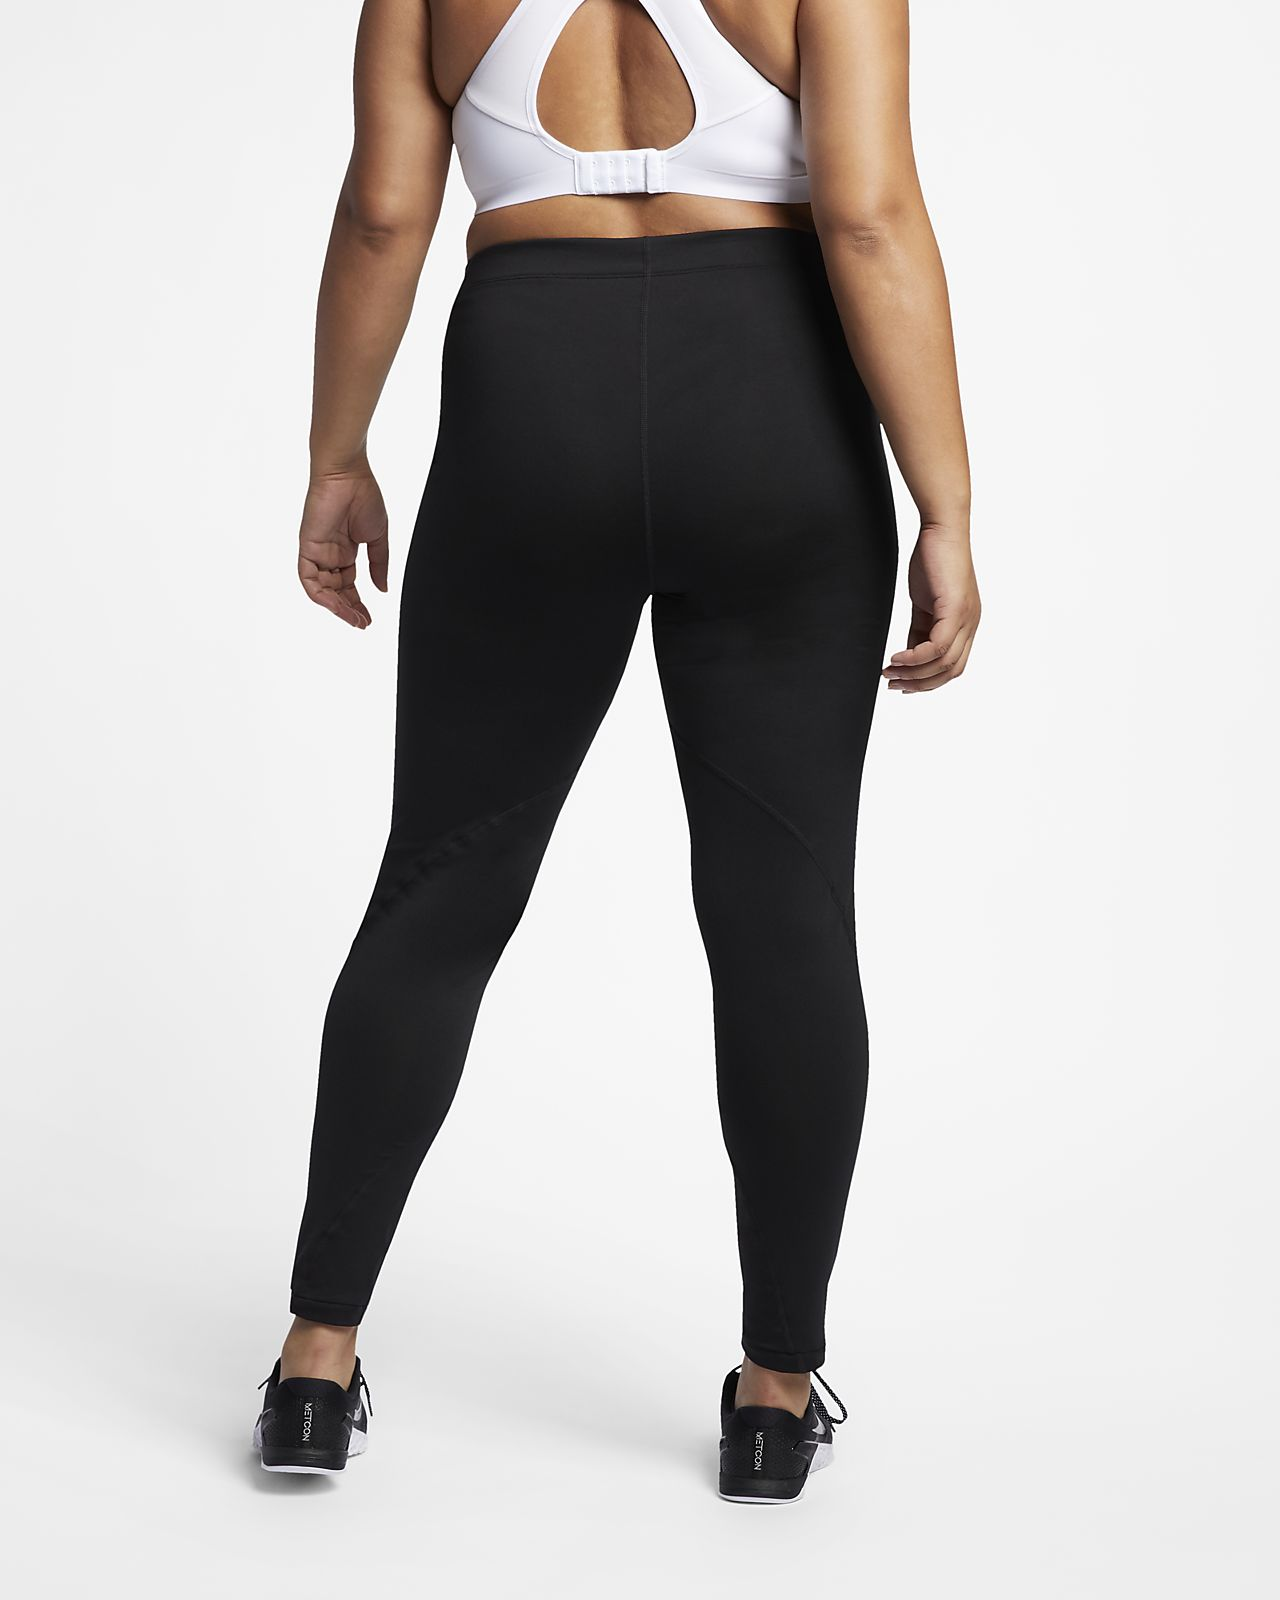 2d54a198a97e4b Nike Pro Women's Mid-Rise Training Tights (Plus Size). Nike.com SI